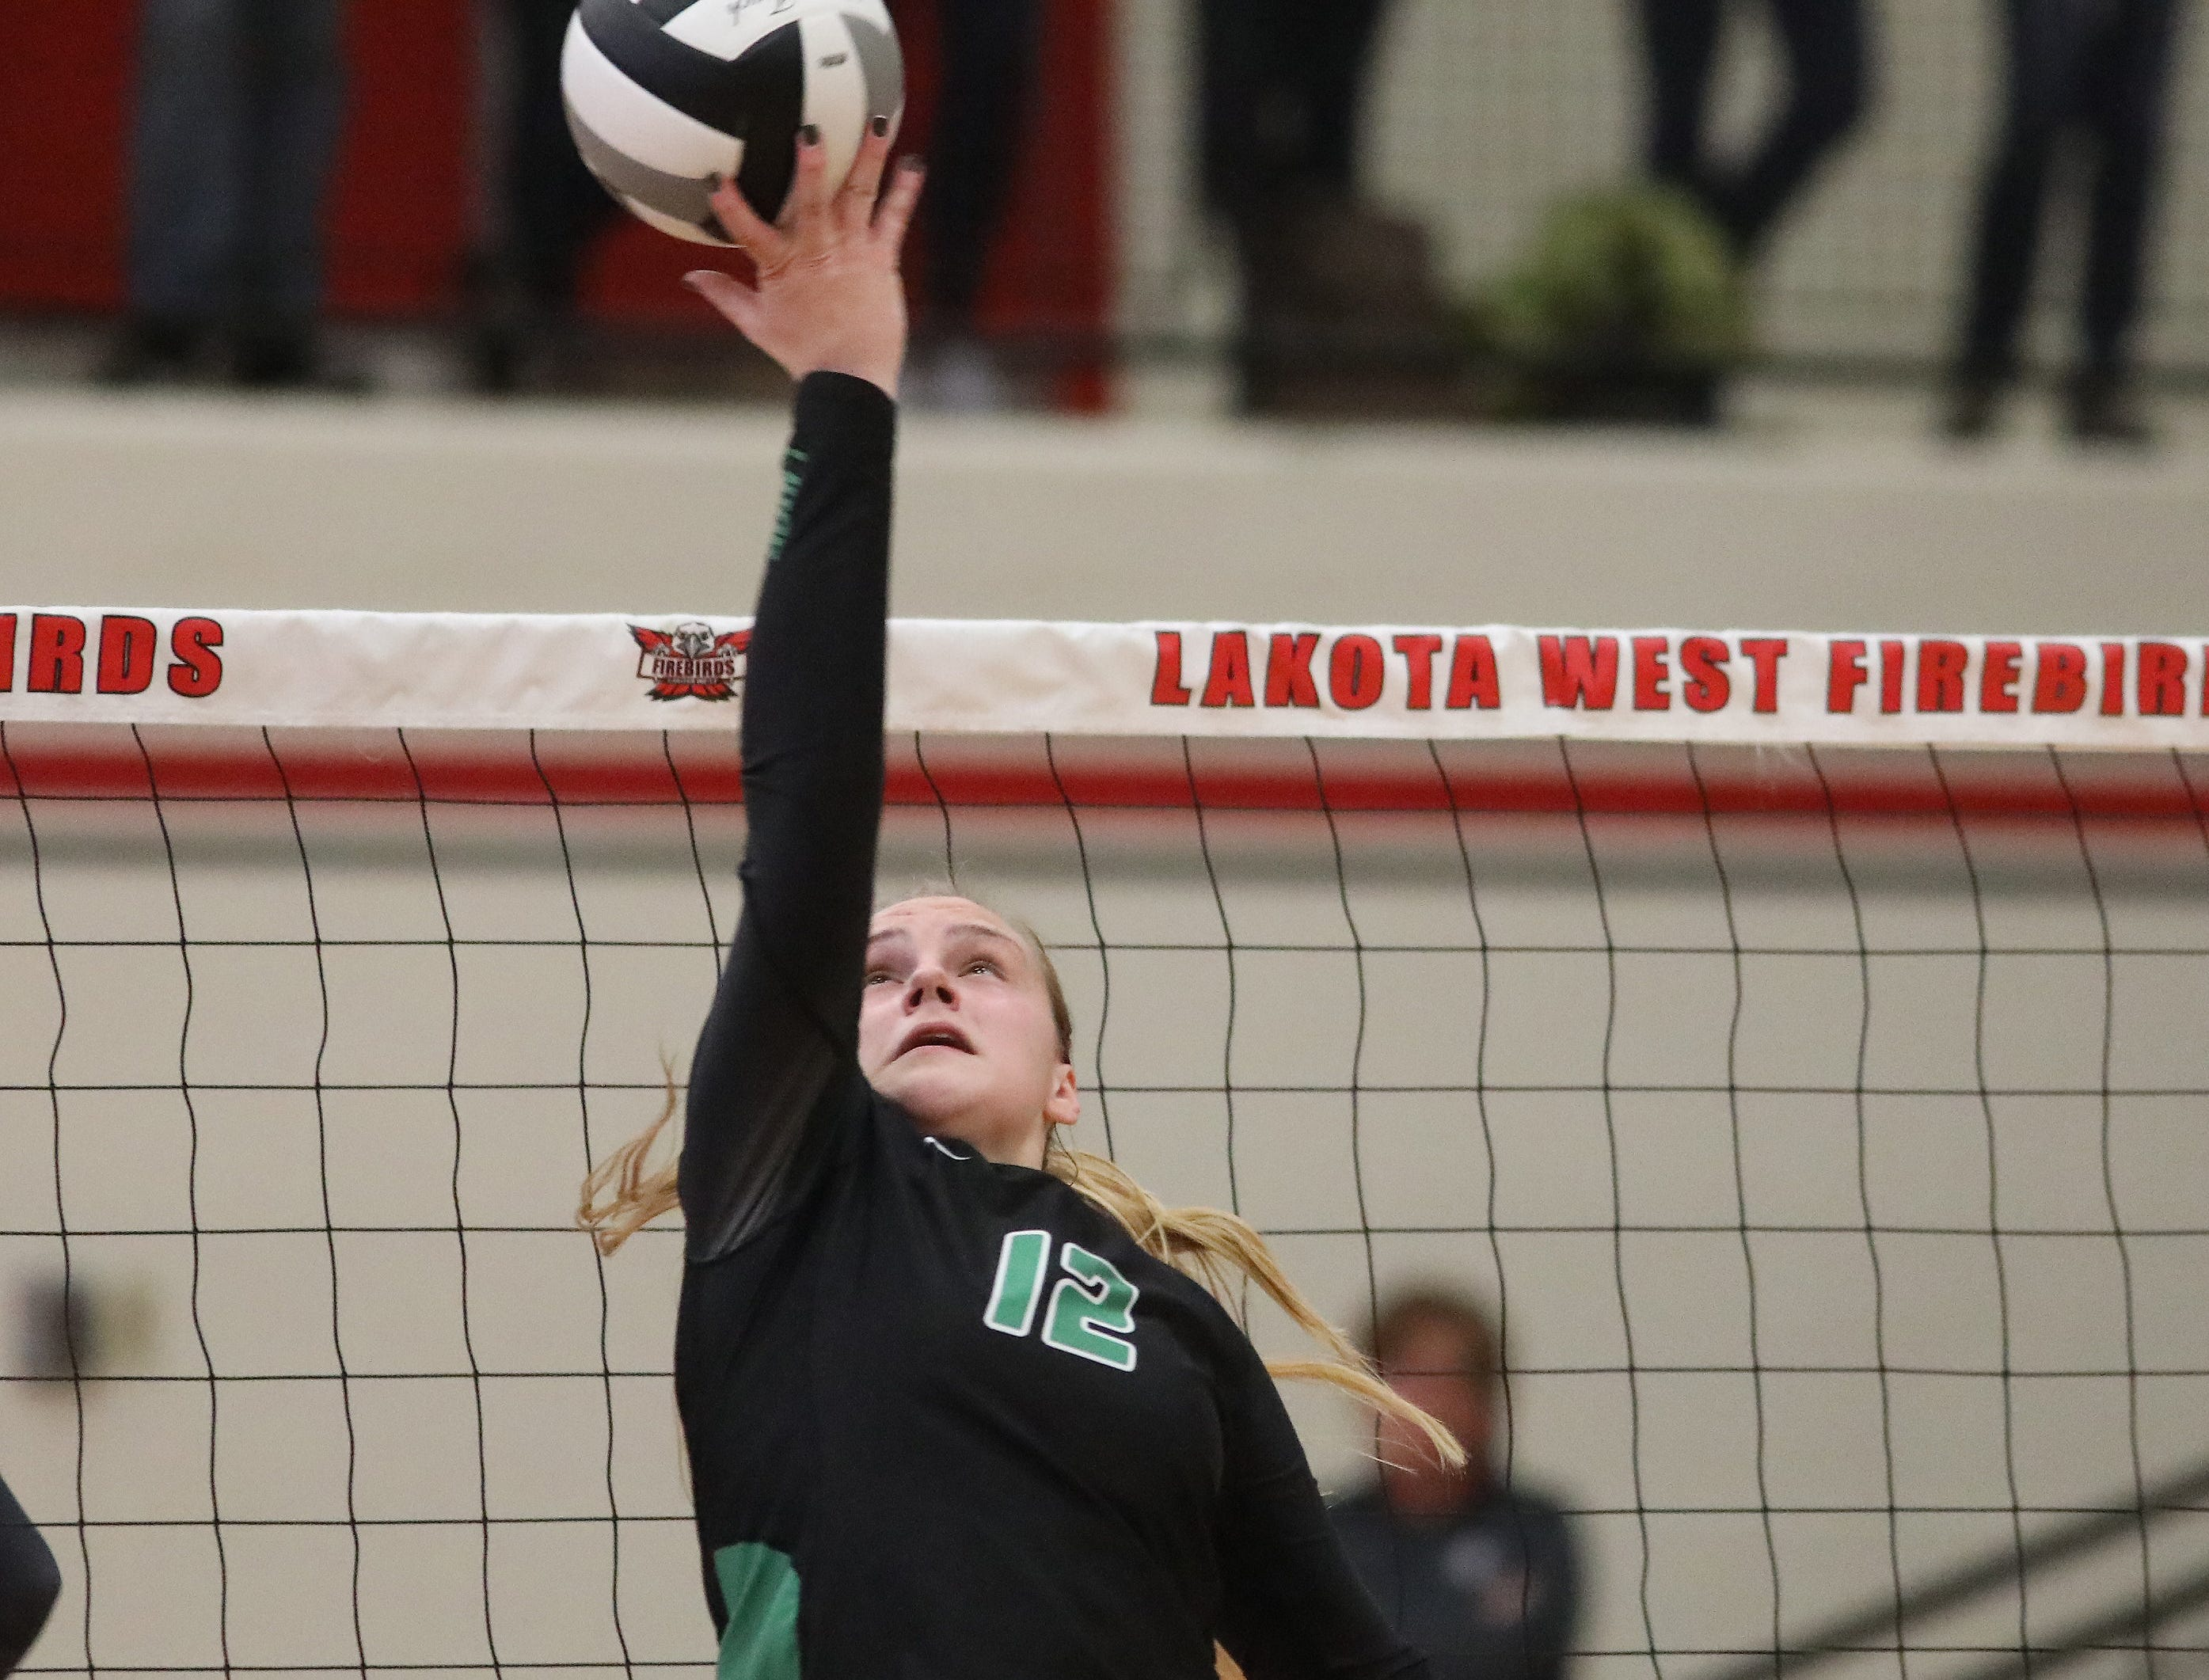 Ursuline player Logan Case (12) tips the ball over the net during the Lions win the regional championship game against Mount Notre Dame. Saturday, Nov. 3,2018.